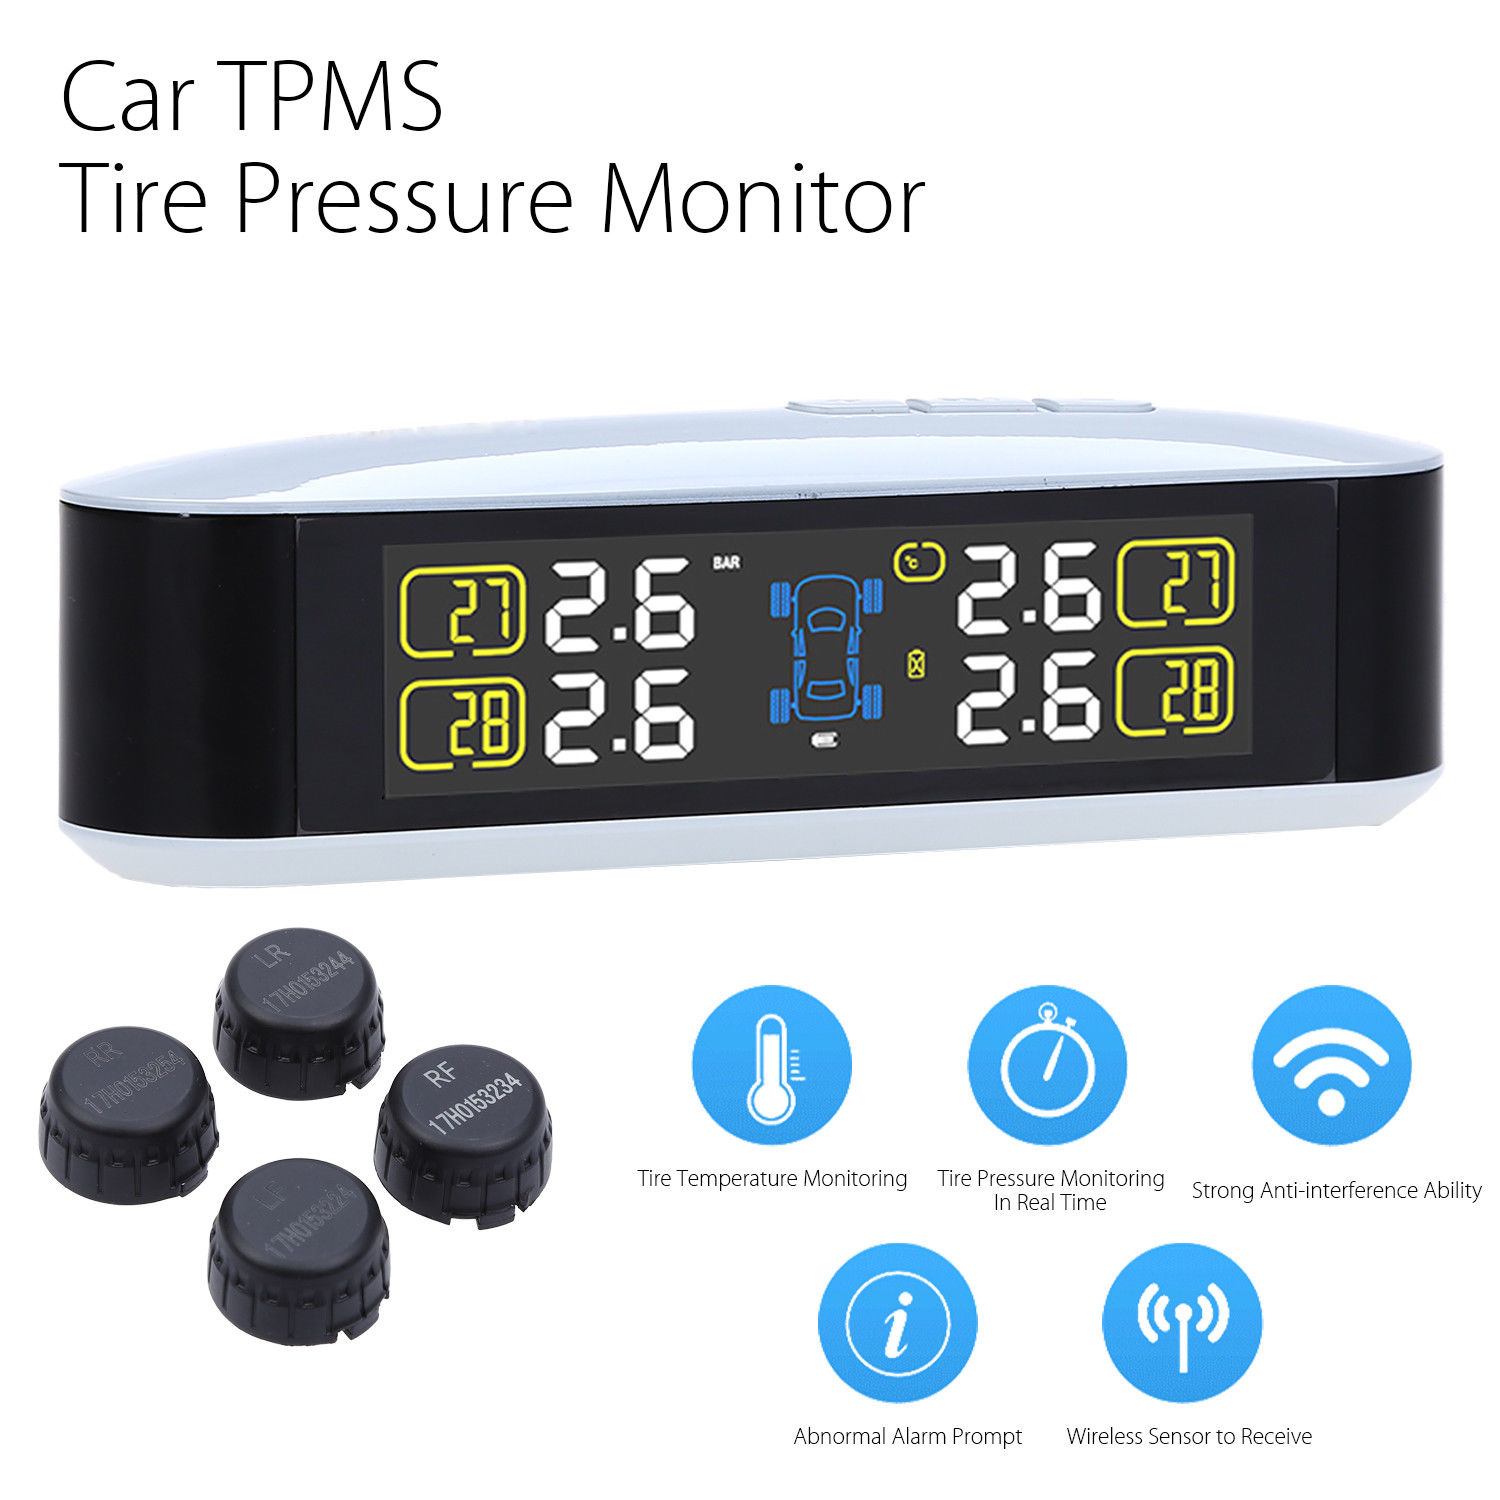 Car TPMS Tire Pressure Wireless Monitoring Temperature System PSI BAR USB Alarm 4 External Sensors Auto Tire Pressure Alarm LCD car tpms tire pressure wireless monitoring temperature system psi bar usb alarm 4 external sensors auto tire pressure alarm lcd